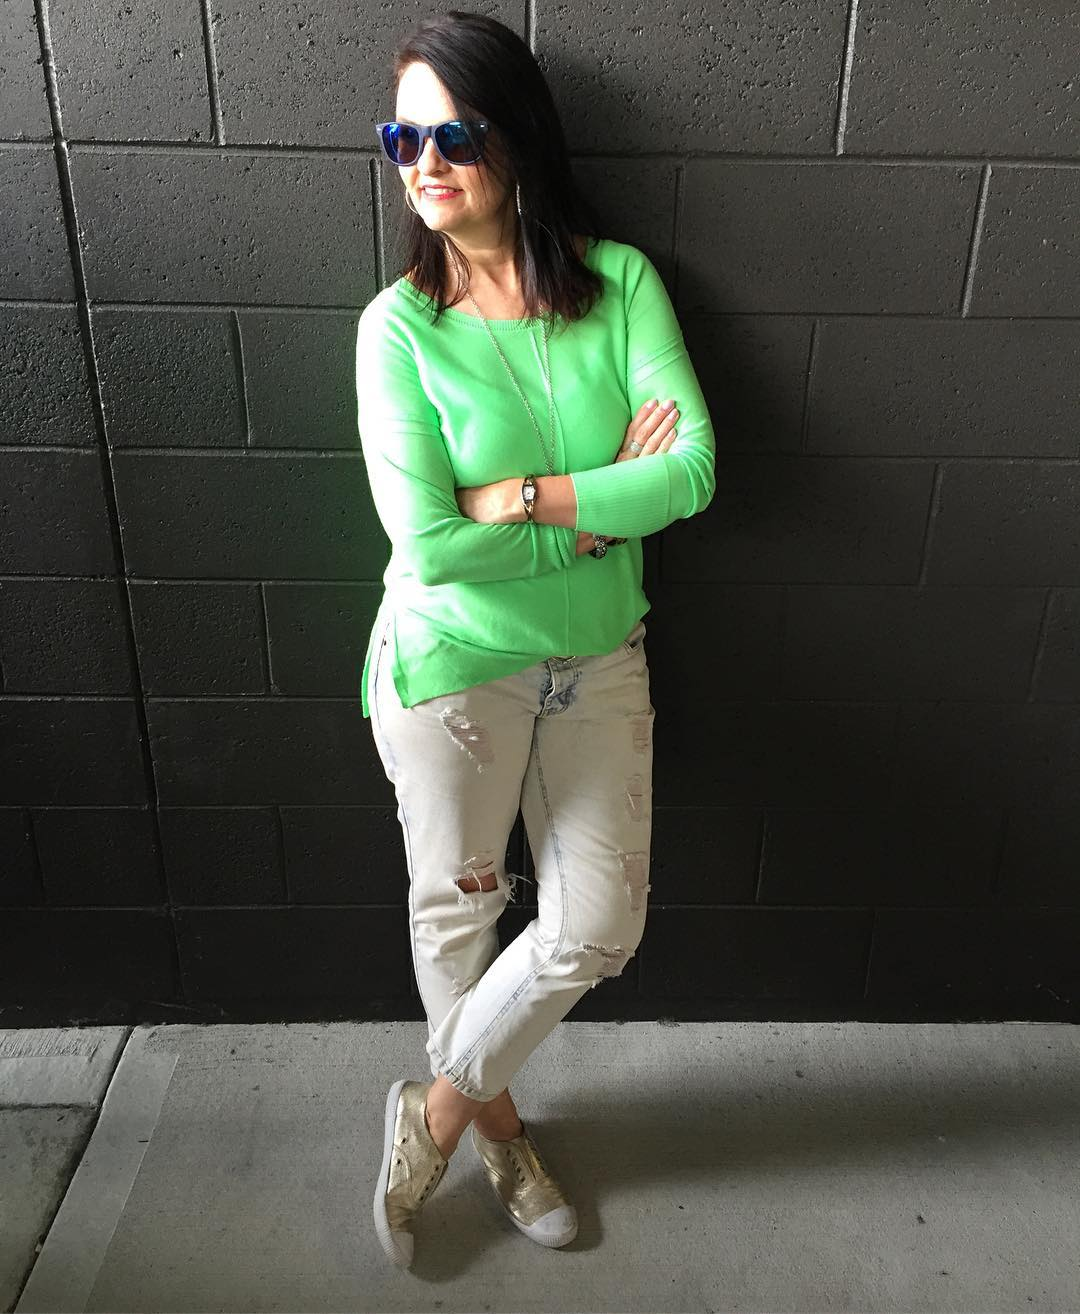 Fantastic Green Top With Distressed Jeans For Summer Look